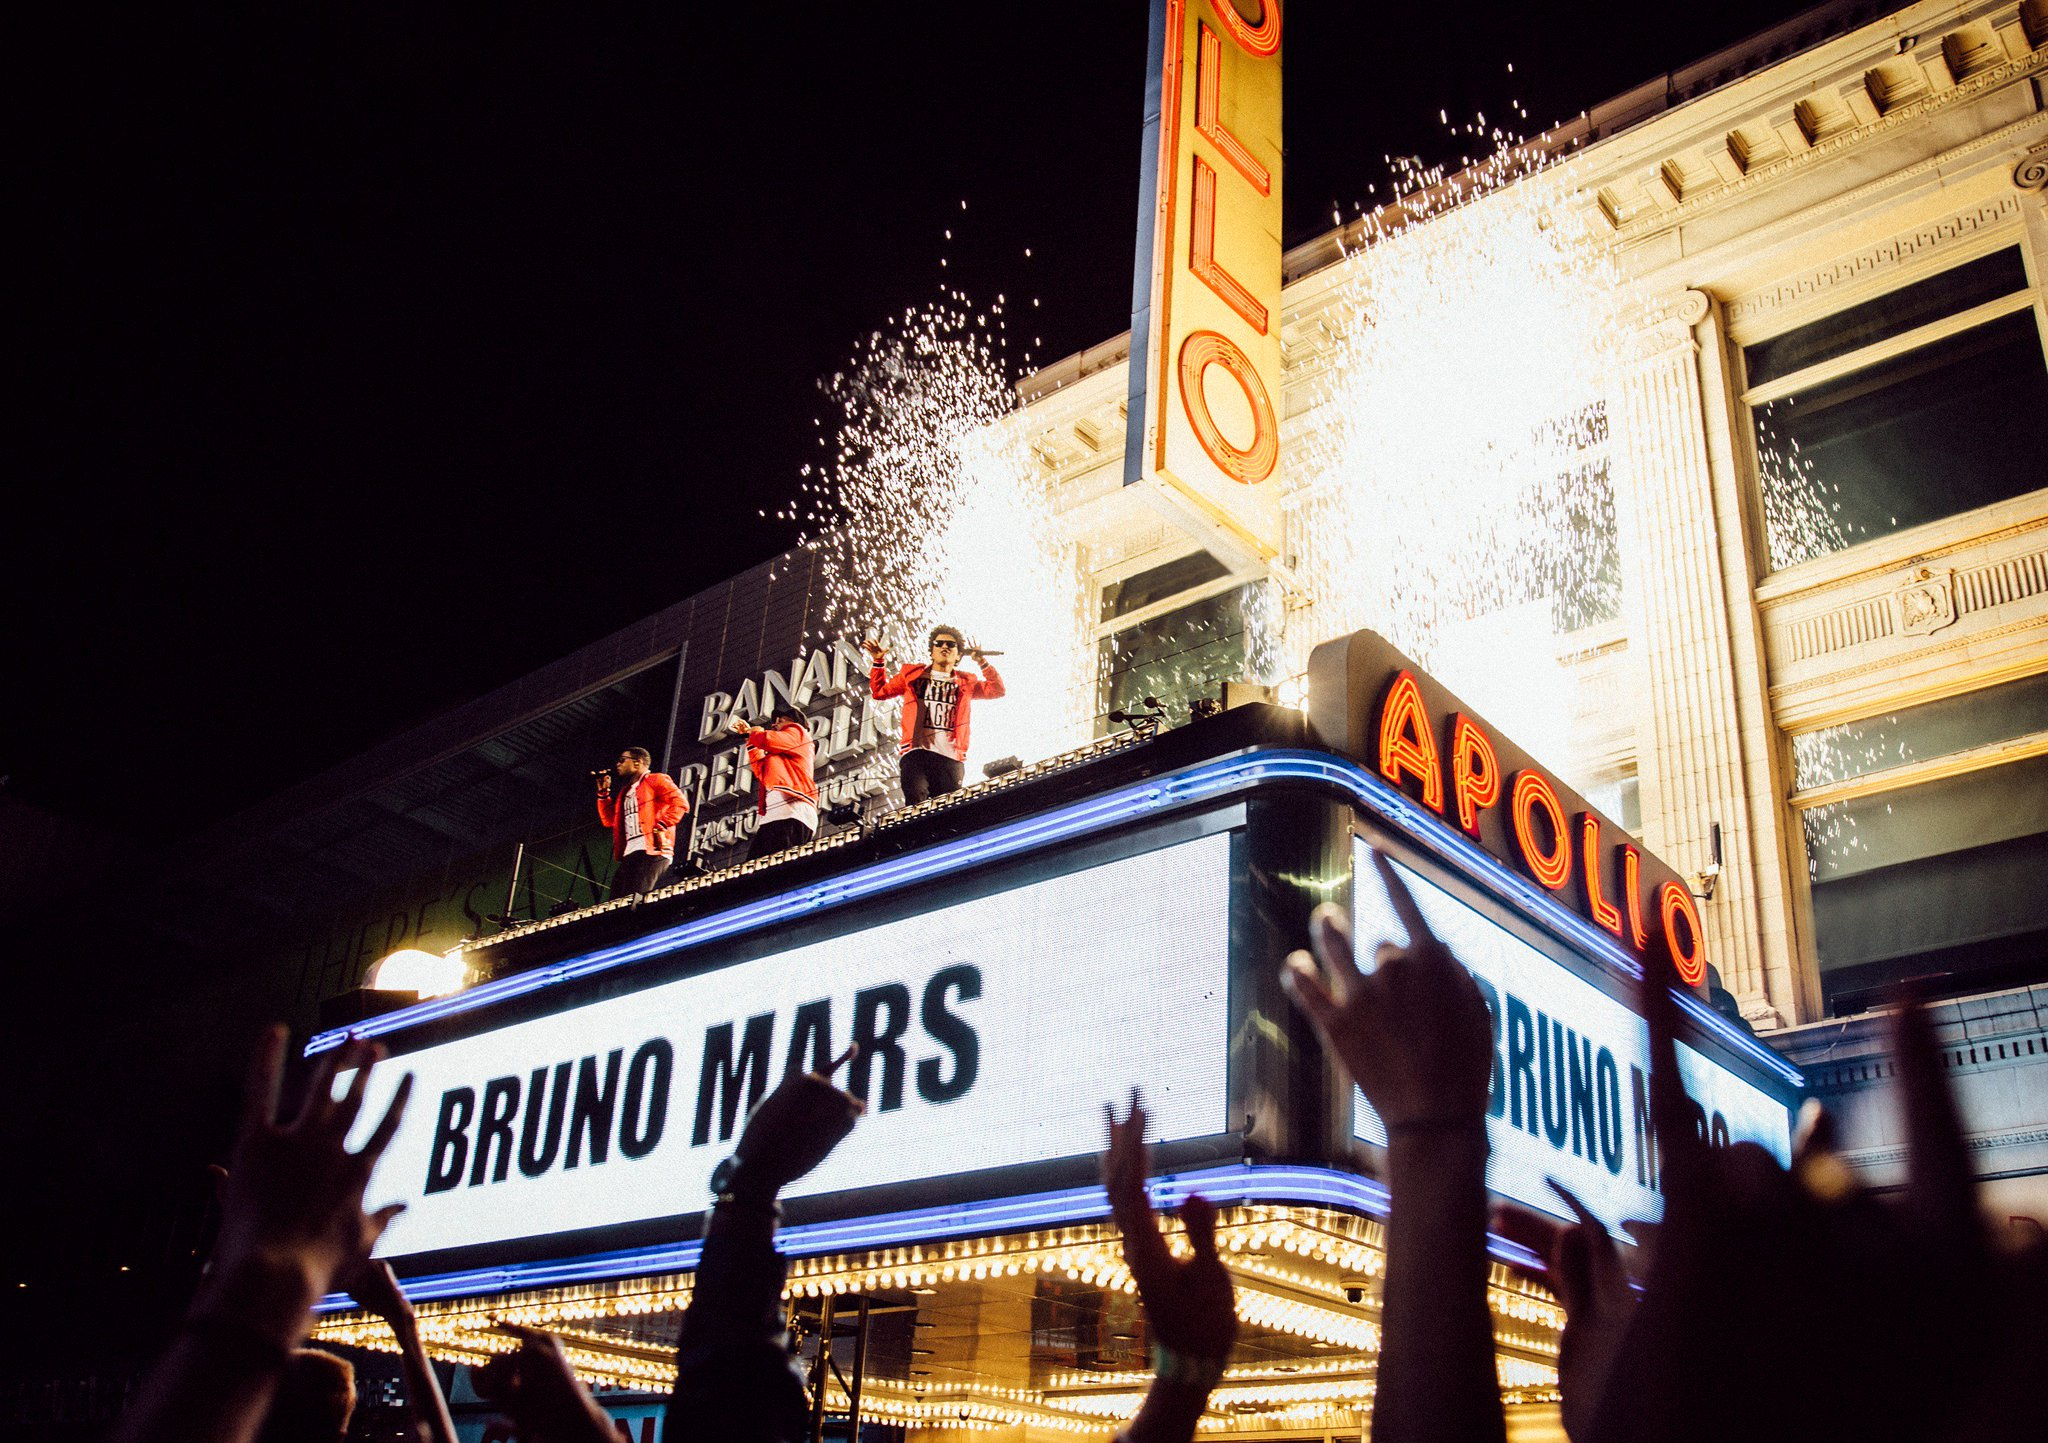 Dance the night away with 'Bruno Mars: 24K Magic Live At The Apollo' airing Nov. 29 on CBS! https://t.co/uZsc3VmMKJ https://t.co/5sPxy8ZoZx